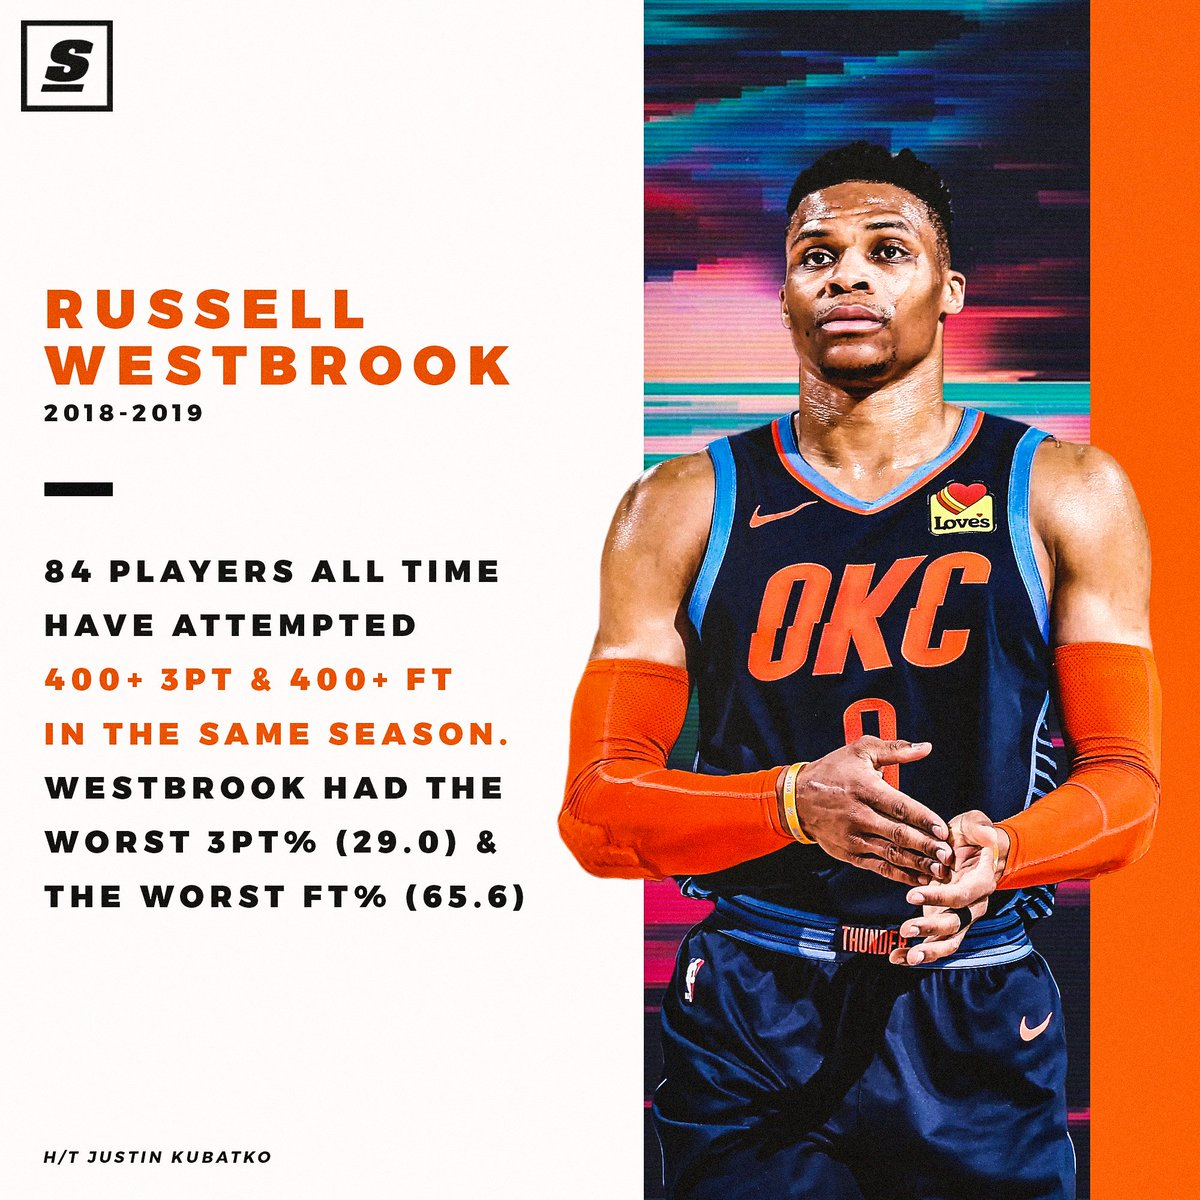 Russ Westbrook in the record books for the wrong reason. 🤦‍♂️